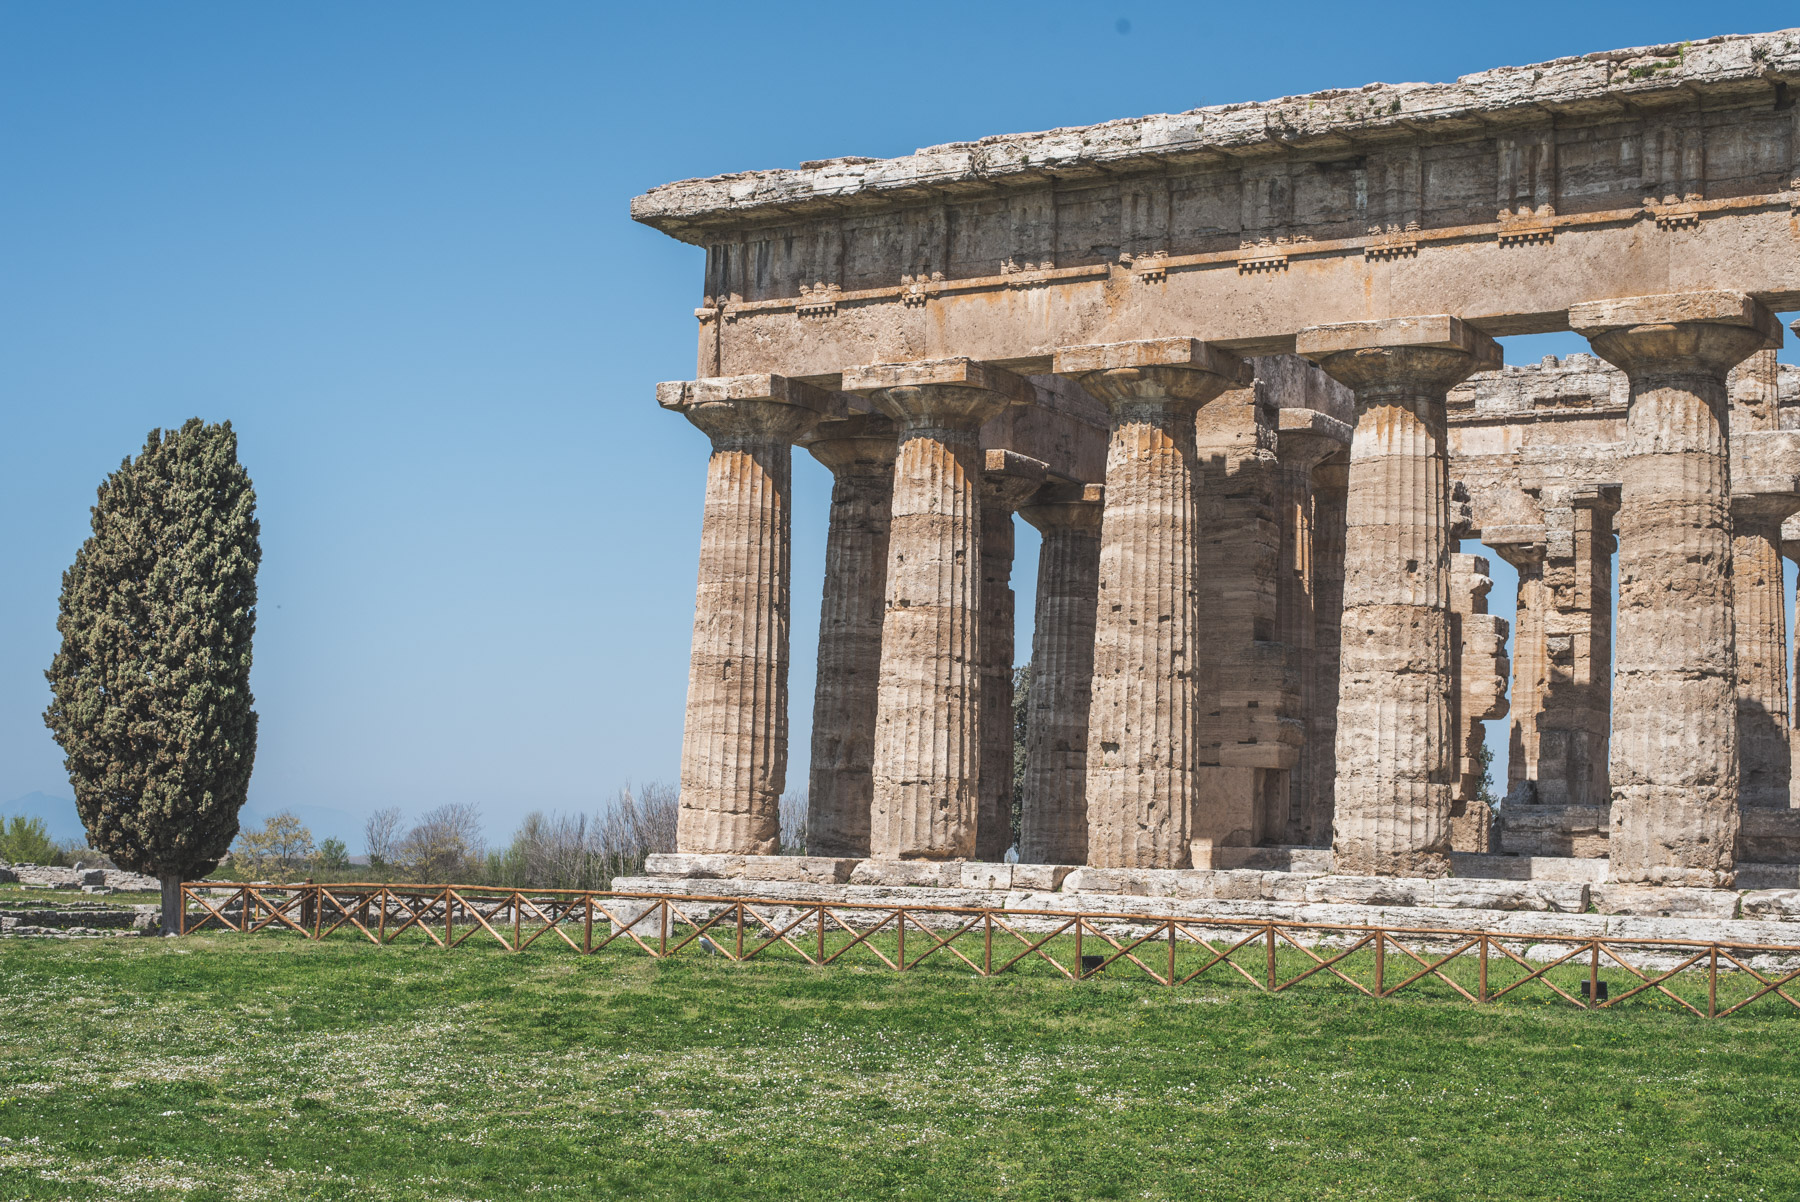 Columns of an ancient Greek temple in Paestum